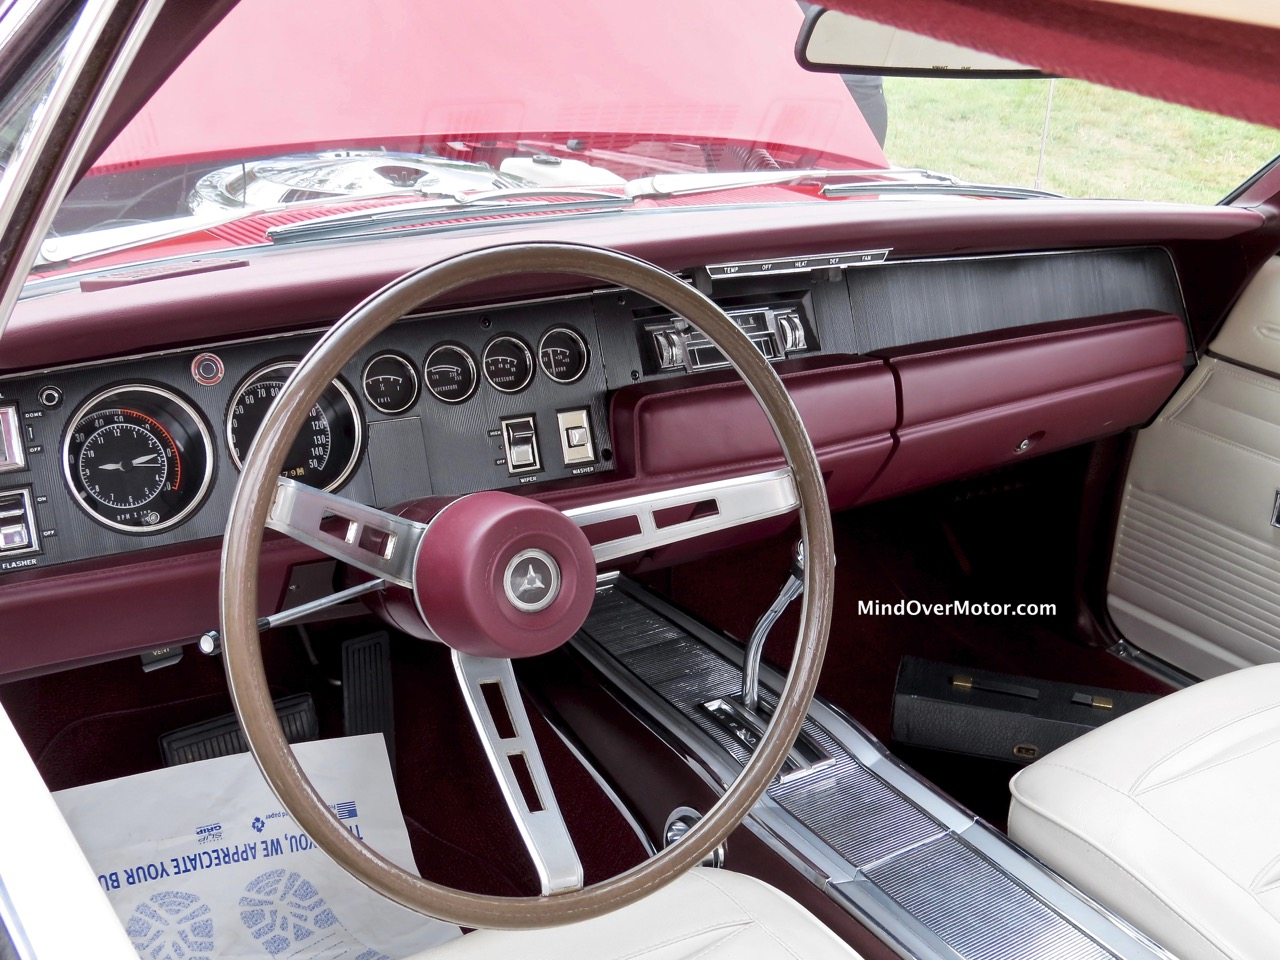 1968 Dodge Charger R:T Interior